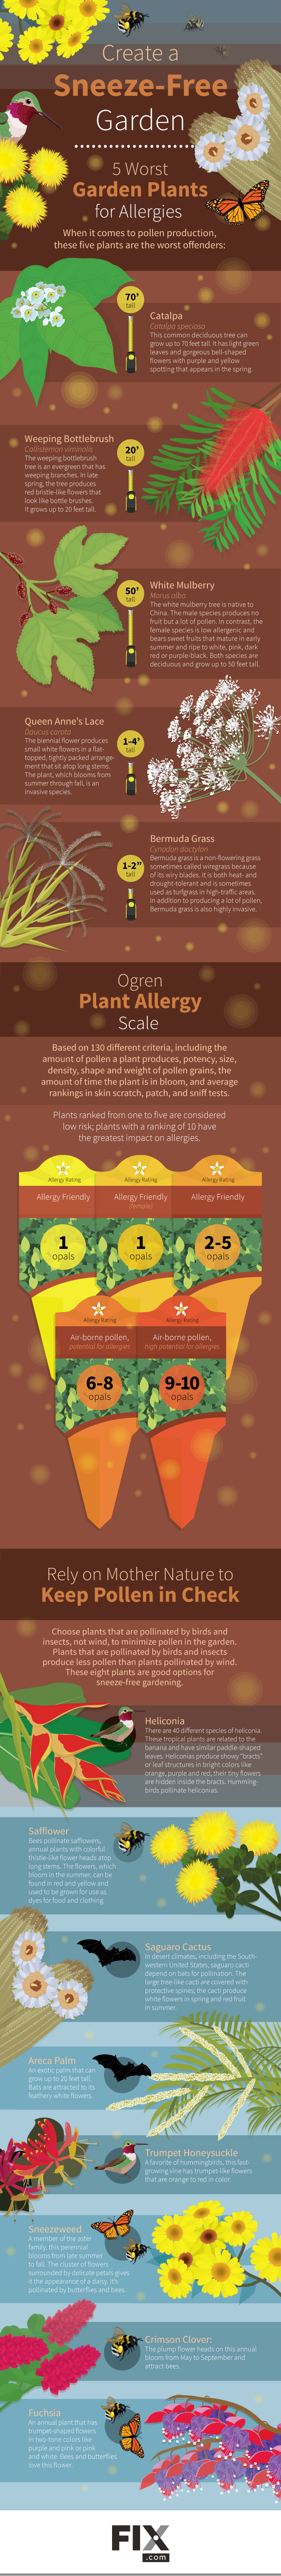 Steer Clear From These 5 Worst Pro-Allergy Plants - Infographic